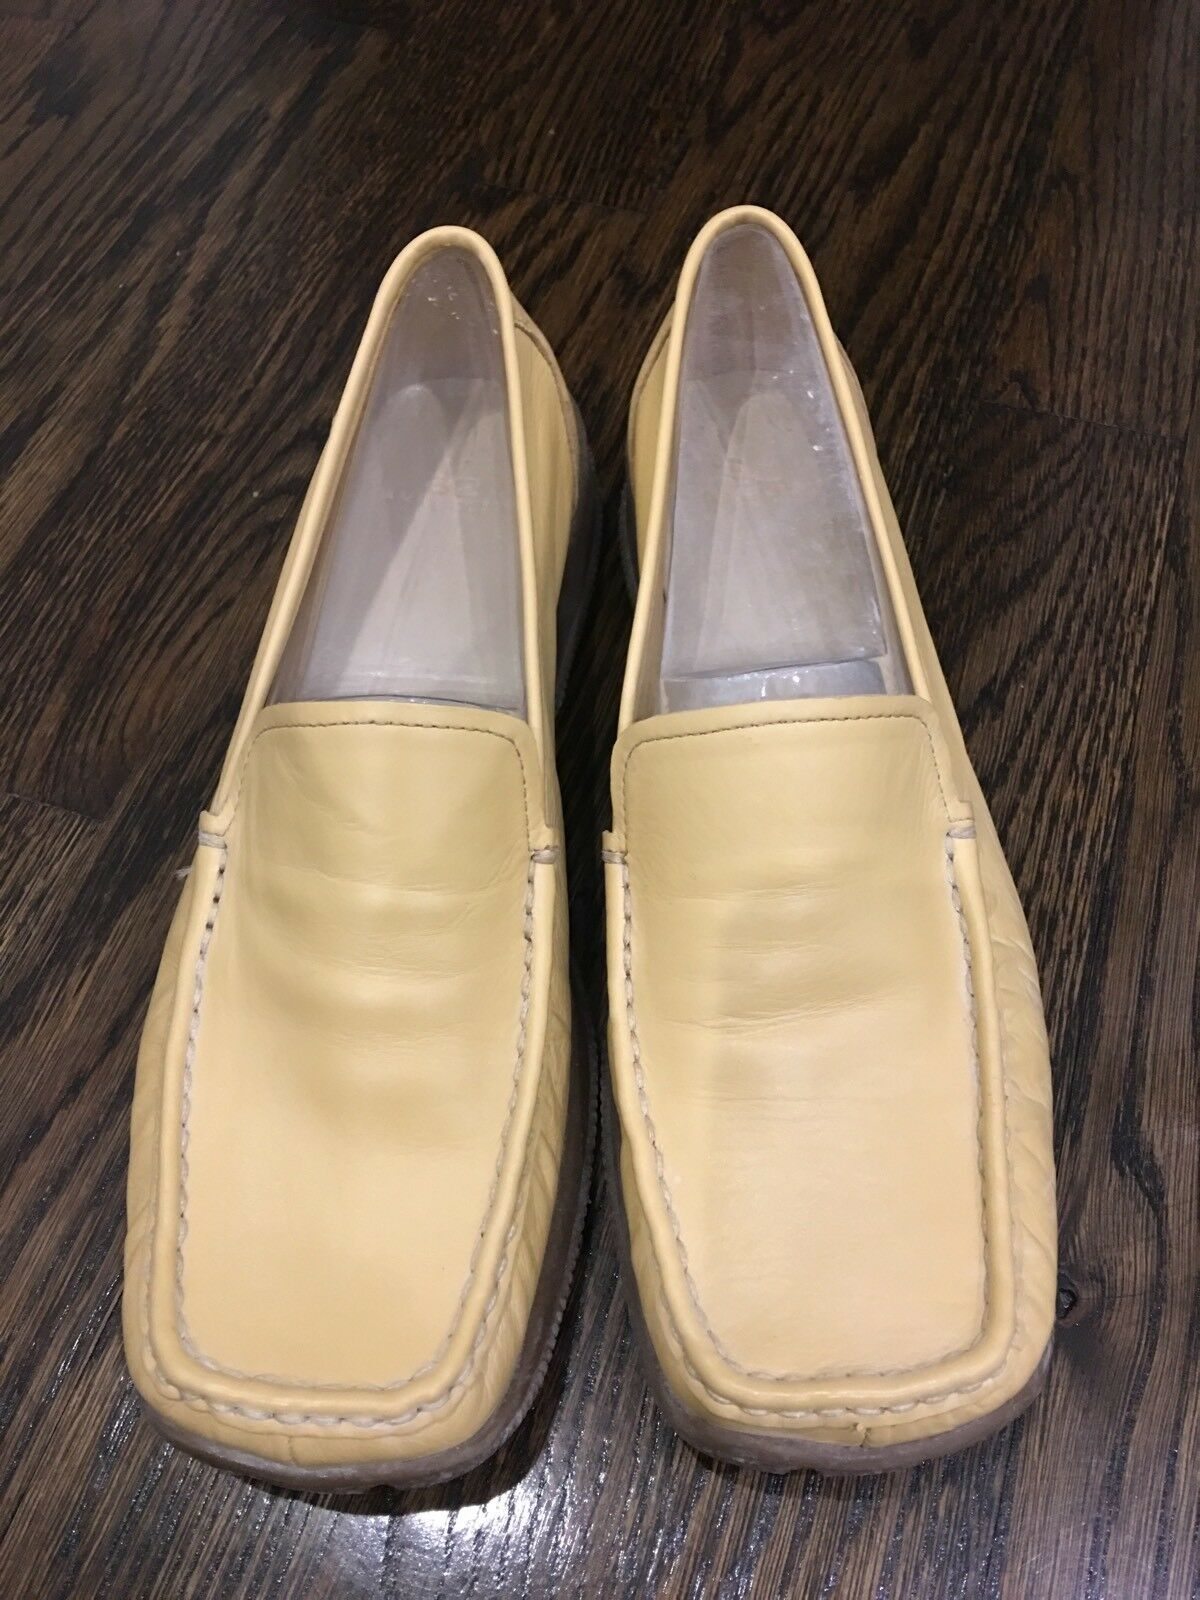 New In Box Blonde Leder Anne Klein Loafer Pedro AK2 Größe 8